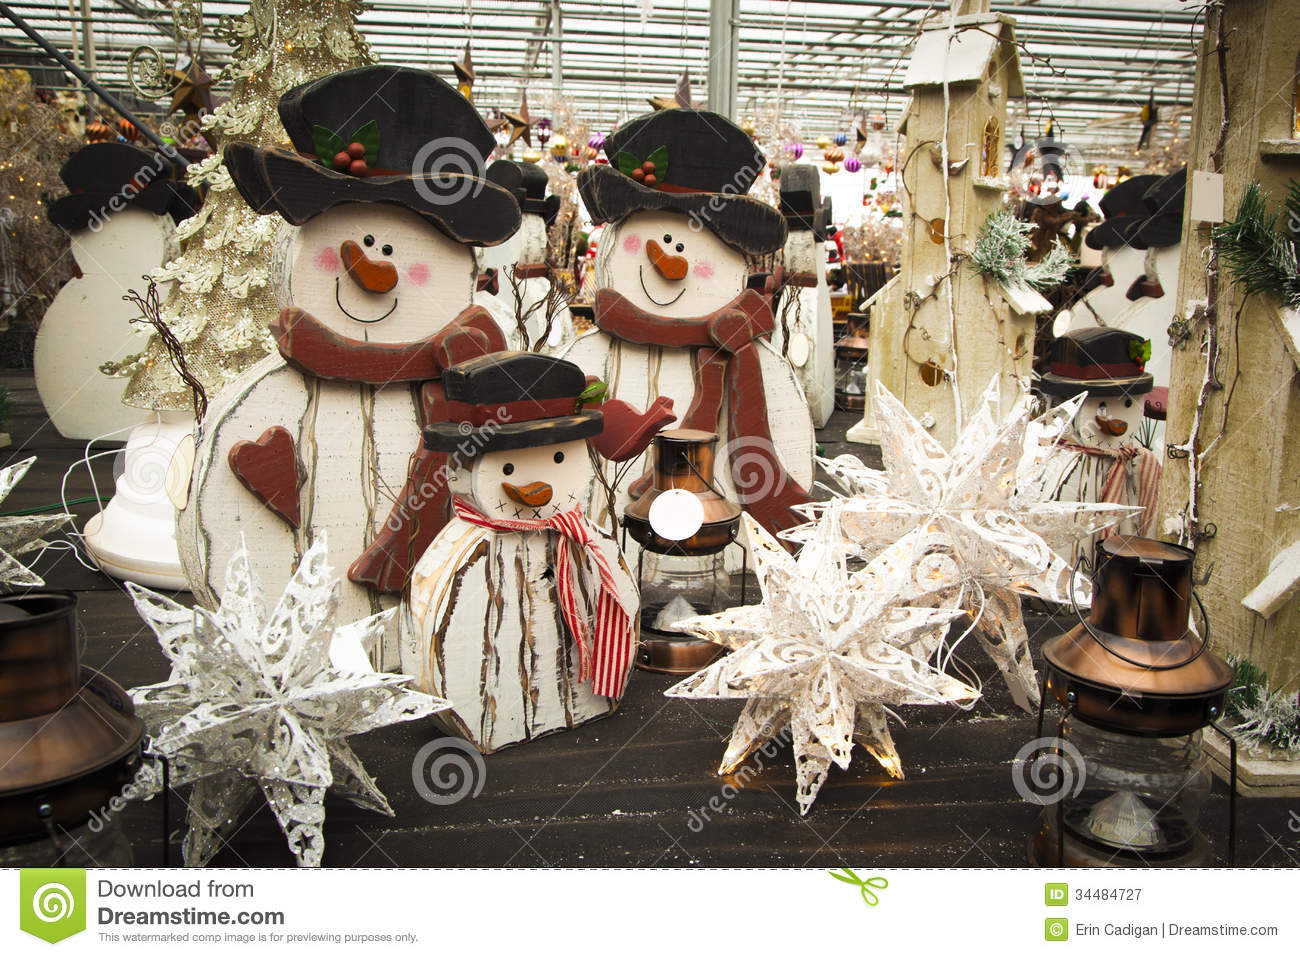 Holiday Centerpieces For Sale : Christmas decorations for sale royalty free stock